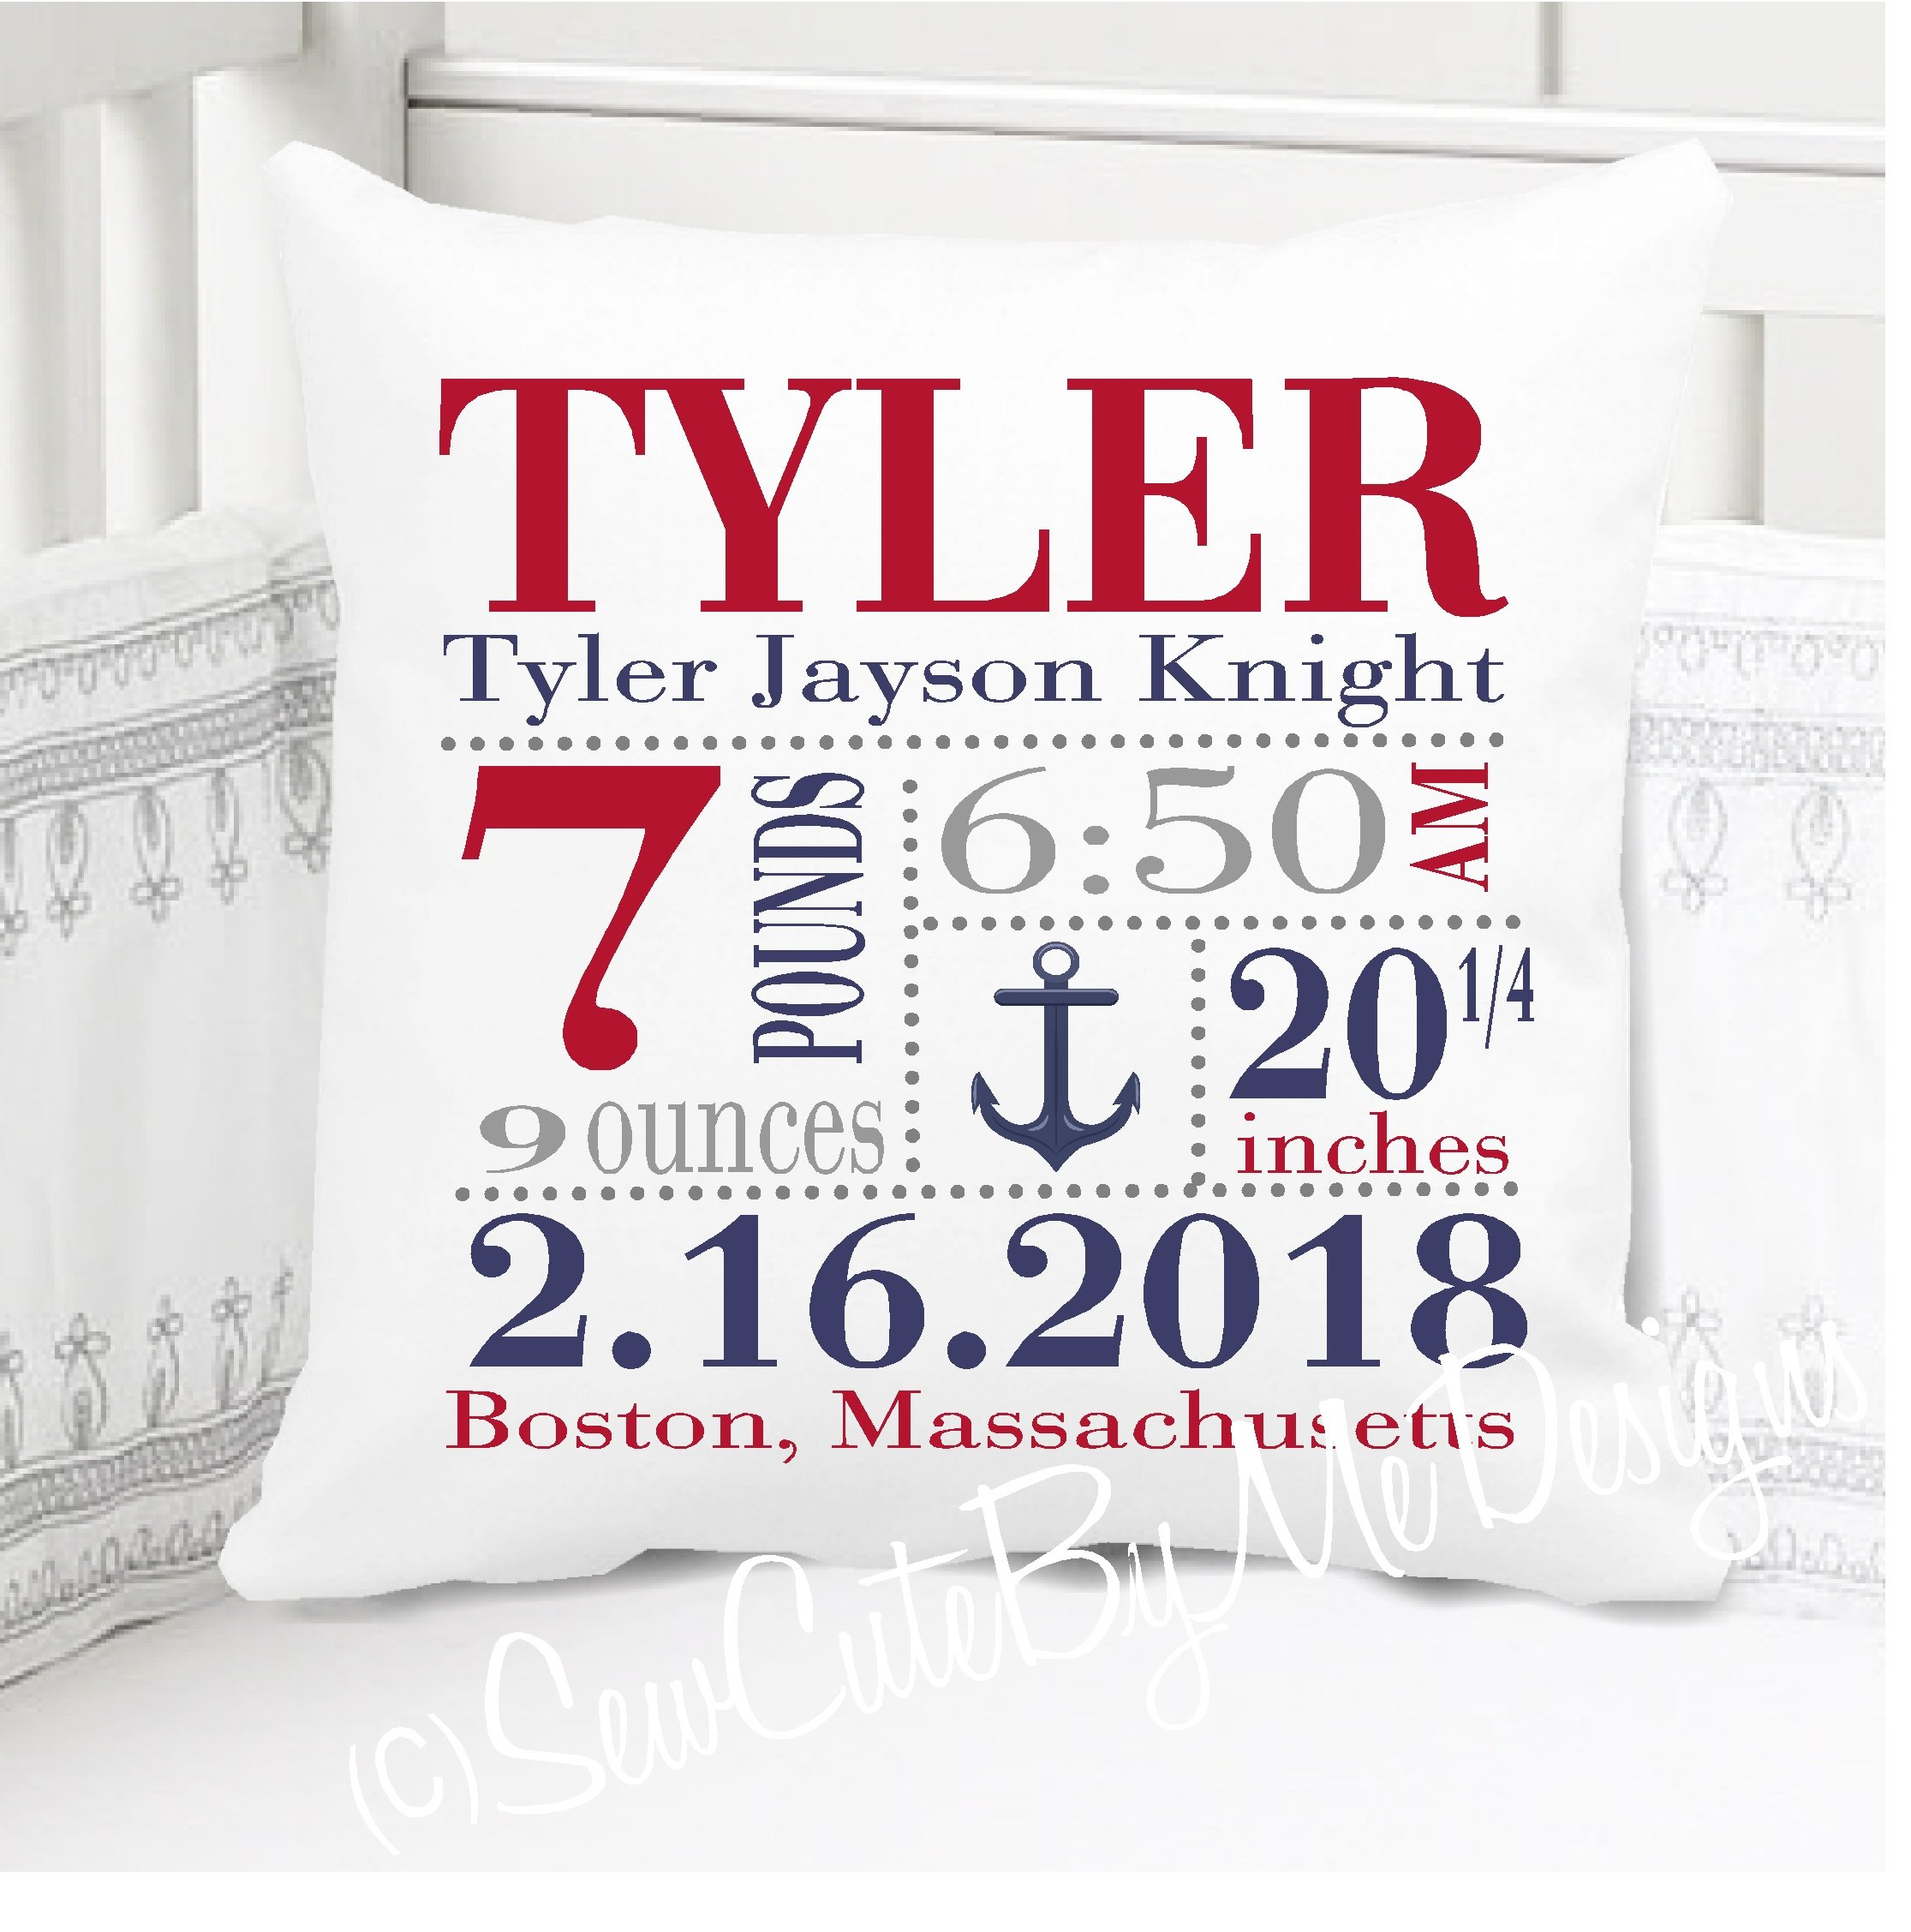 Sew Cute by Me Designs Original Birth Announcement Pillow for Baby Boys Nursery - Nautical Anchor - Includes Personalized Pillowcase and Pillow Insert 14x14 or 16x16